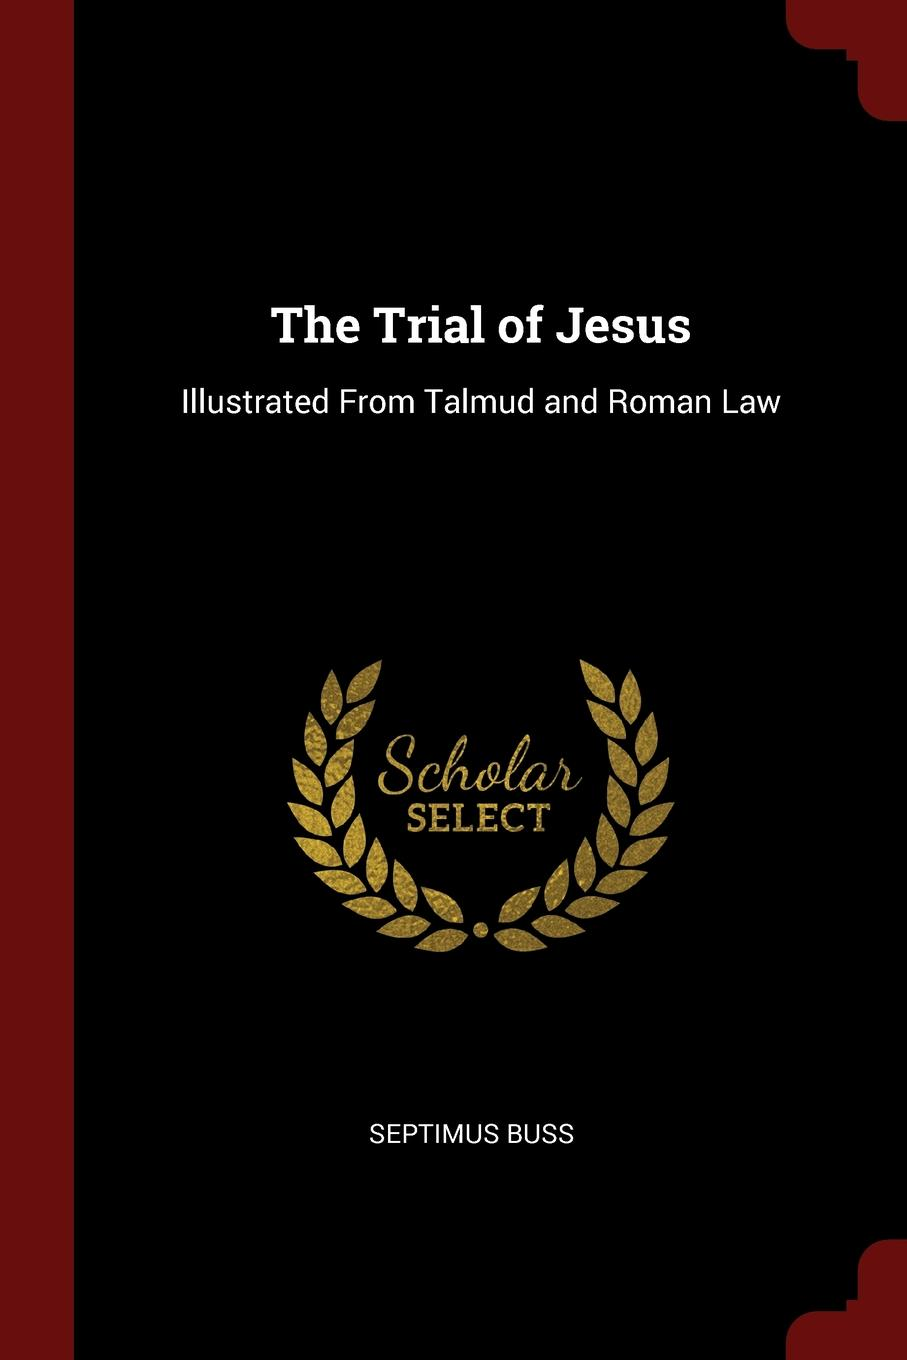 Septimus Buss The Trial of Jesus. Illustrated From Talmud and Roman Law